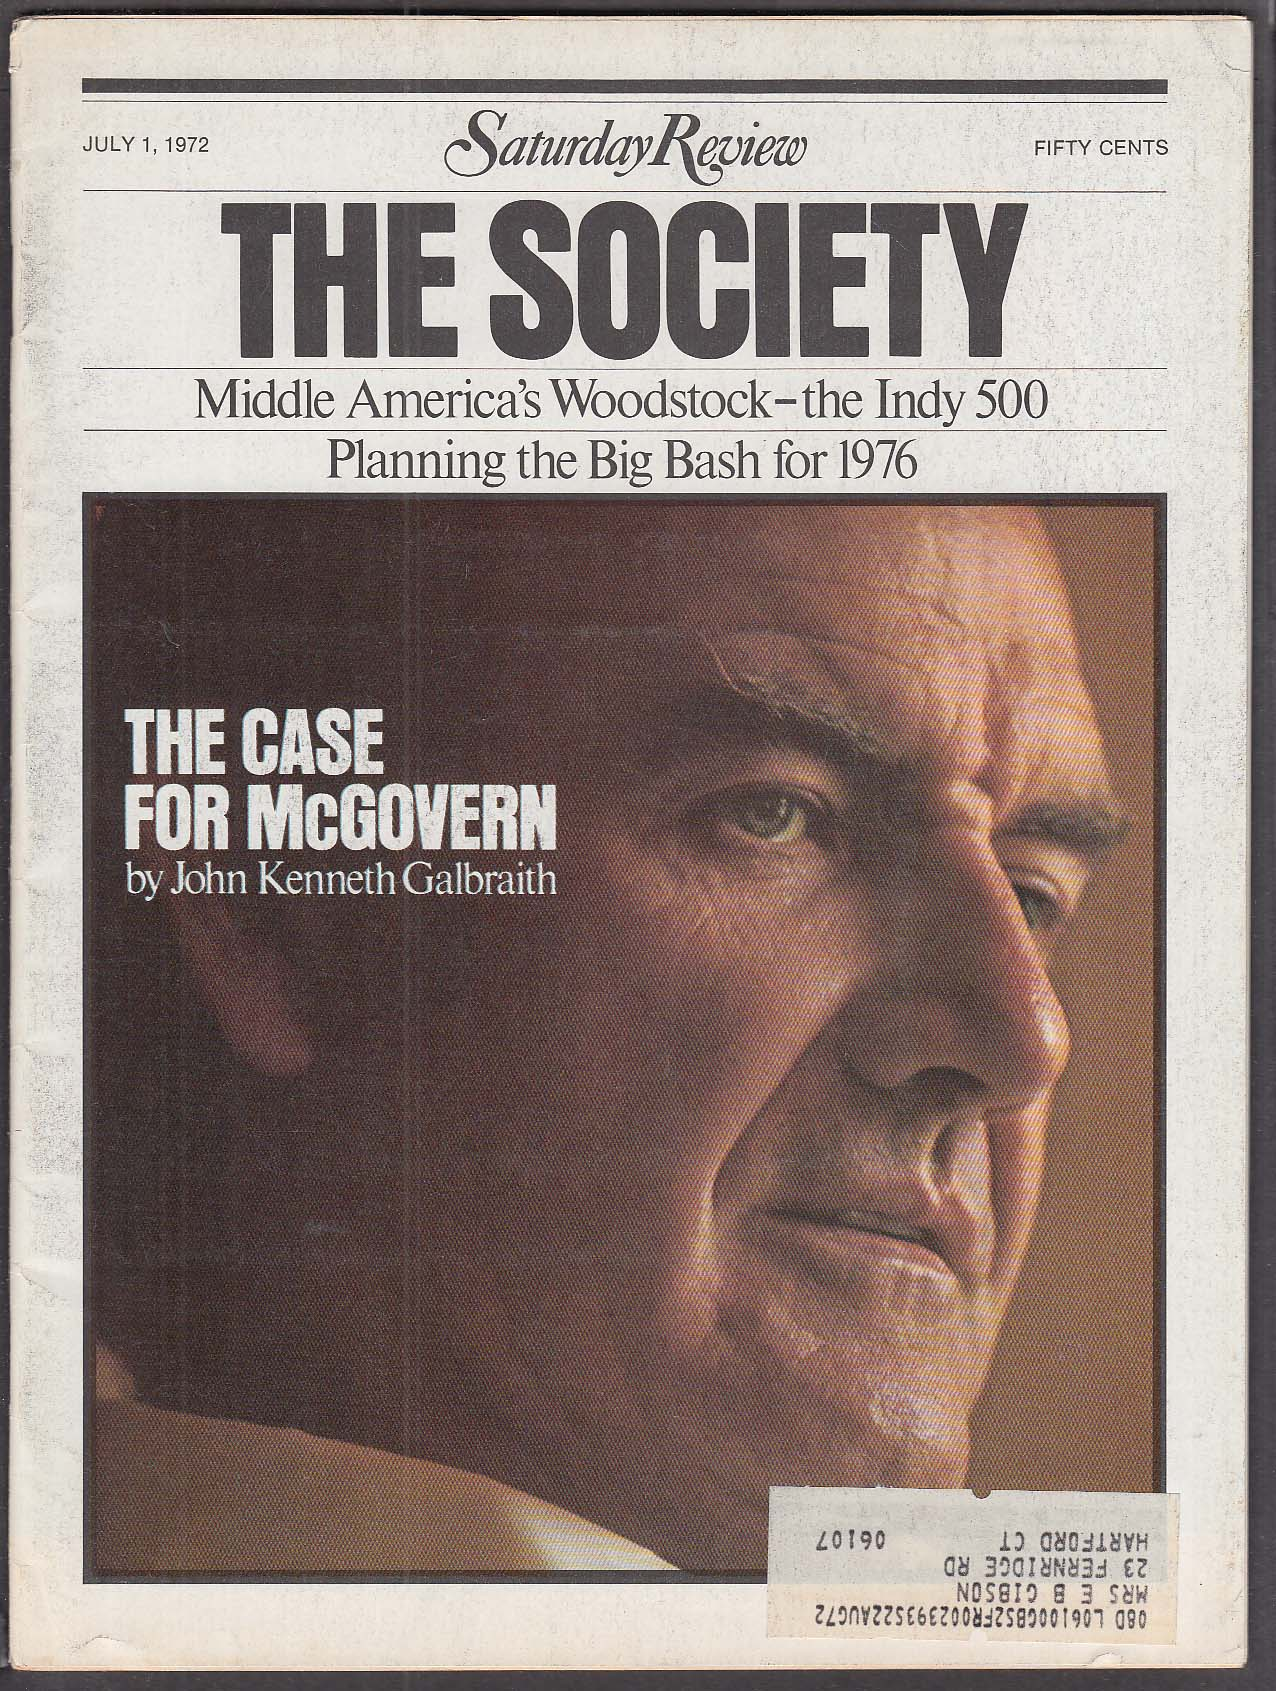 SATURDAY REVIEW The Society John Kenneth Galbraith George McGovern 7/1 1972